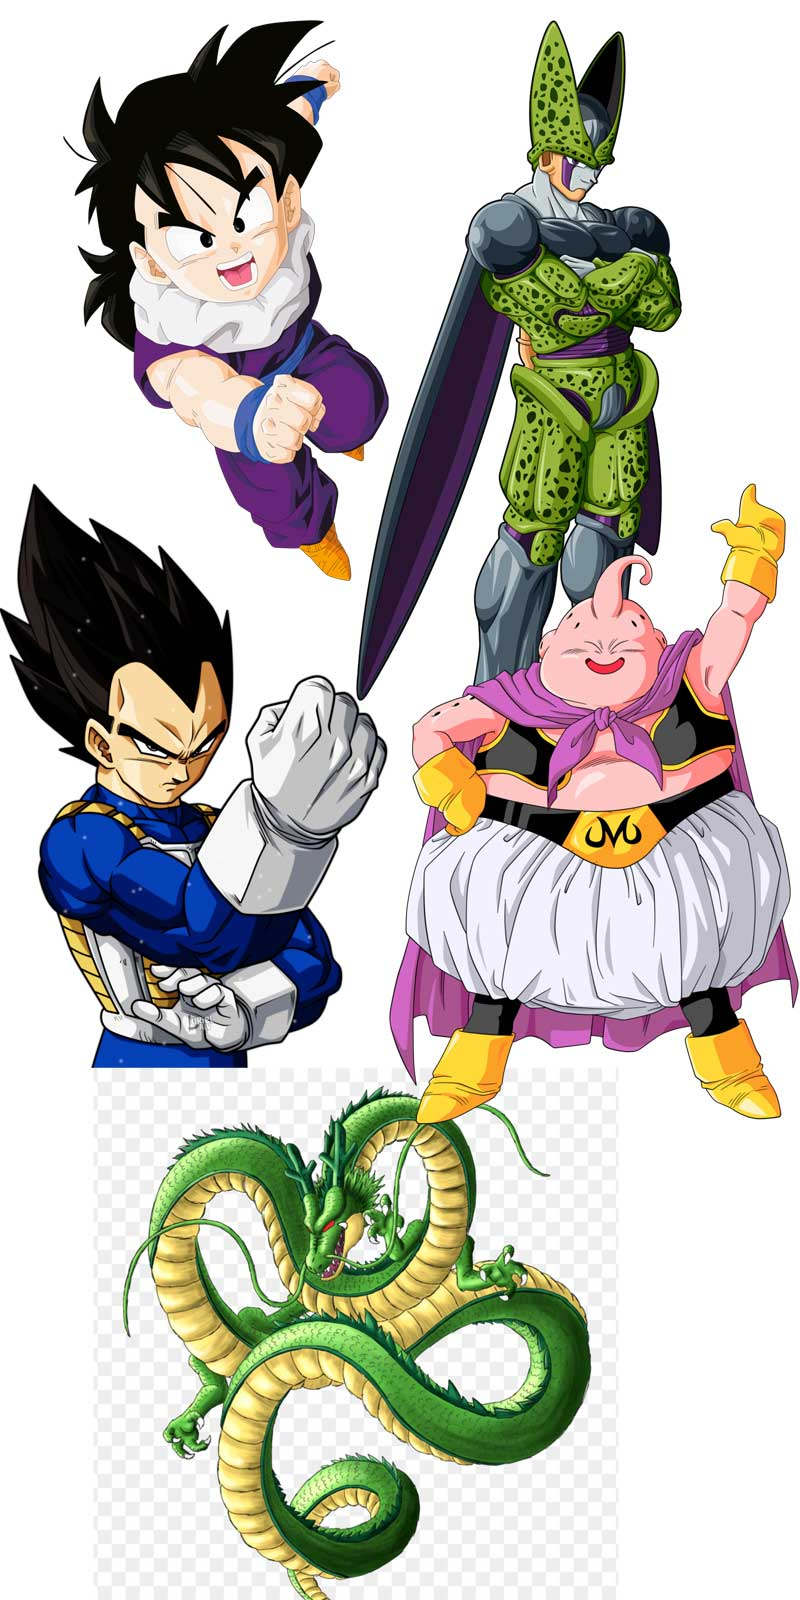 Personajes Dragon Ball z